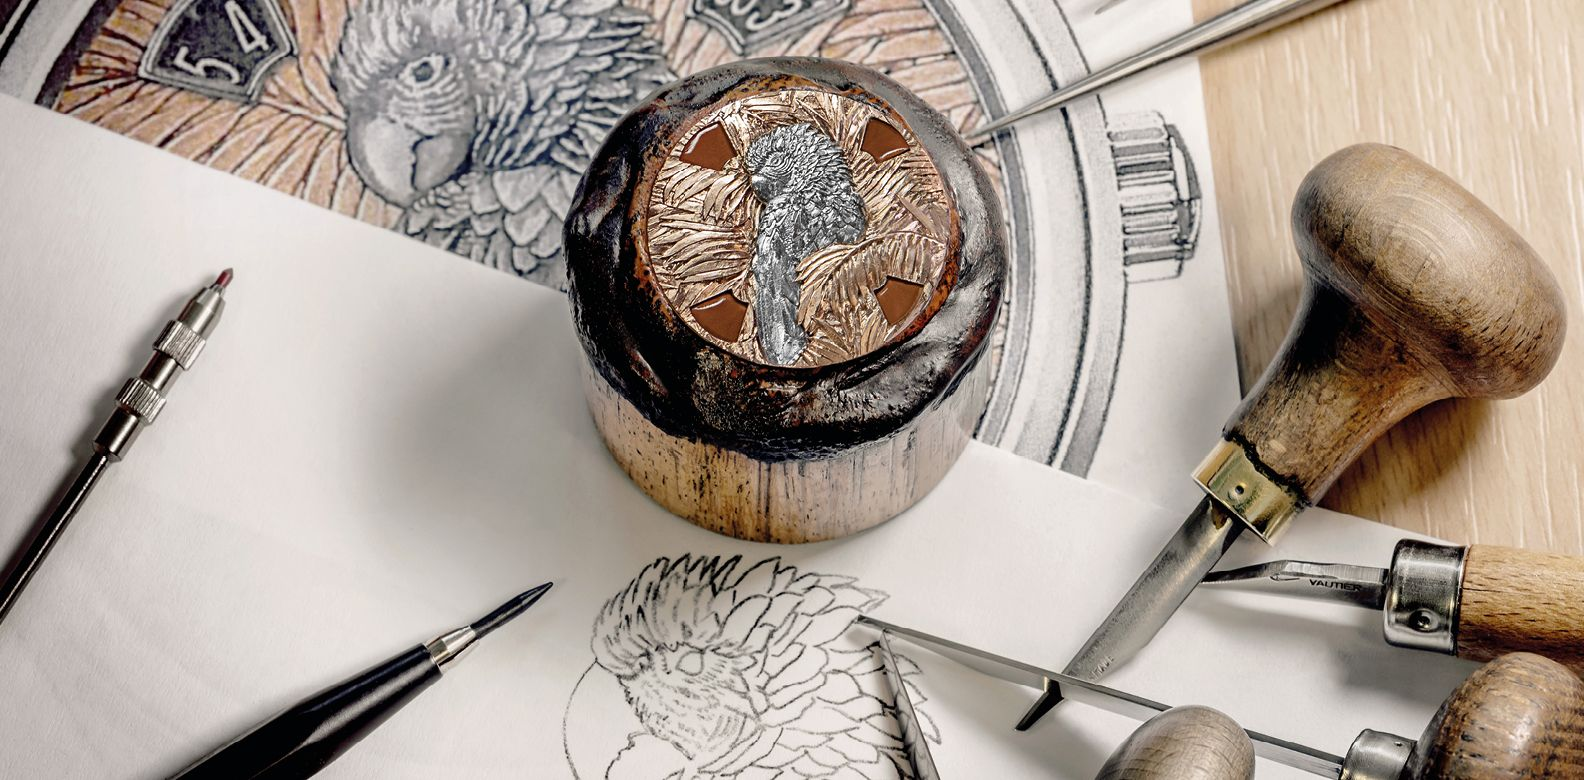 All You Need To Know About Vacheron Constantin's Mécaniques Sauvages Series